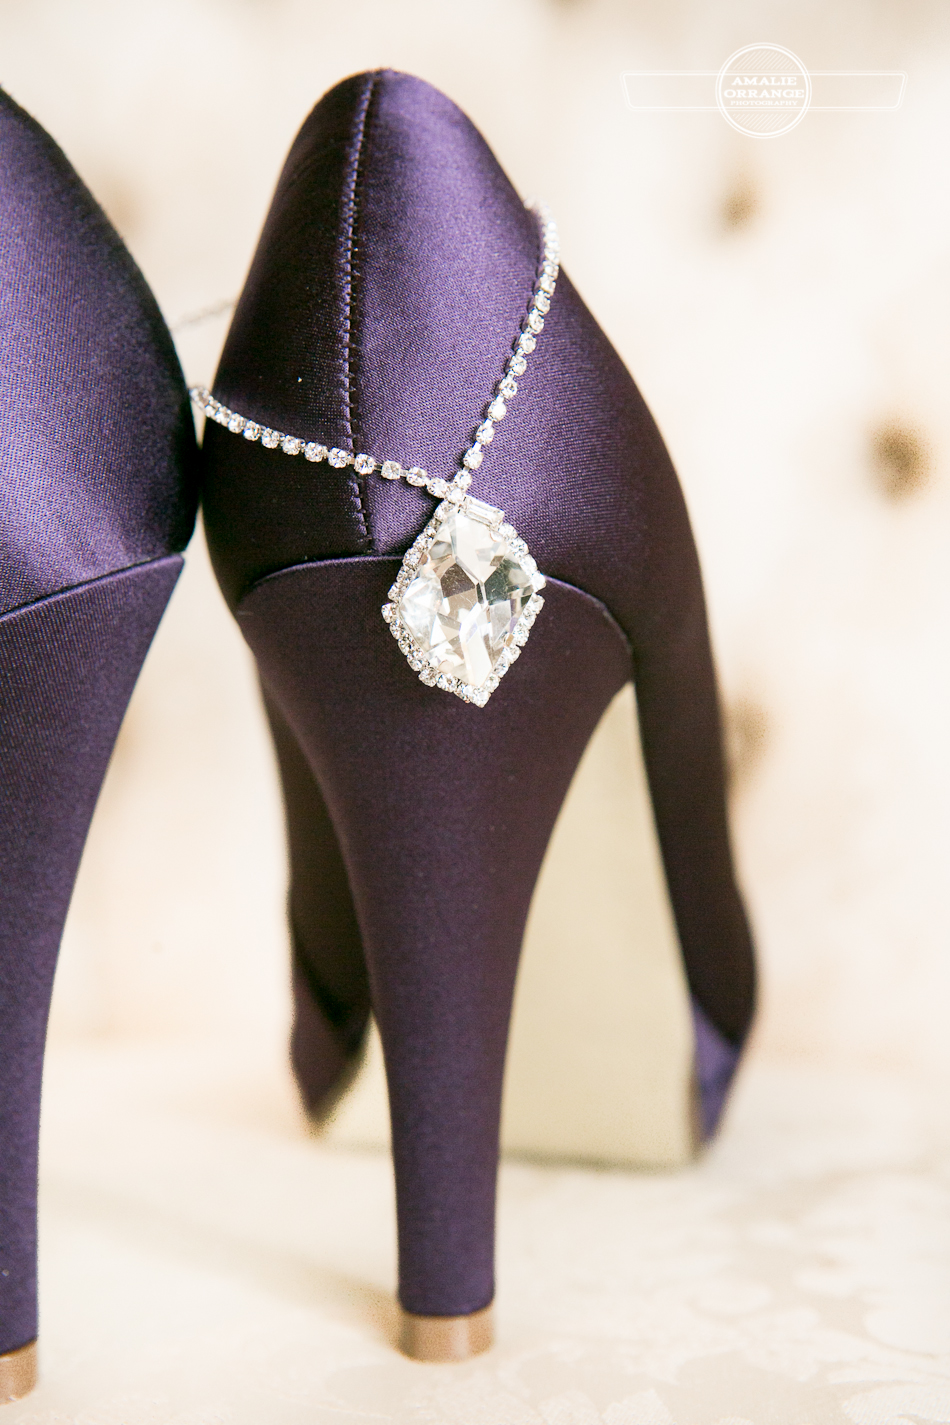 Purple shoes with diamonds